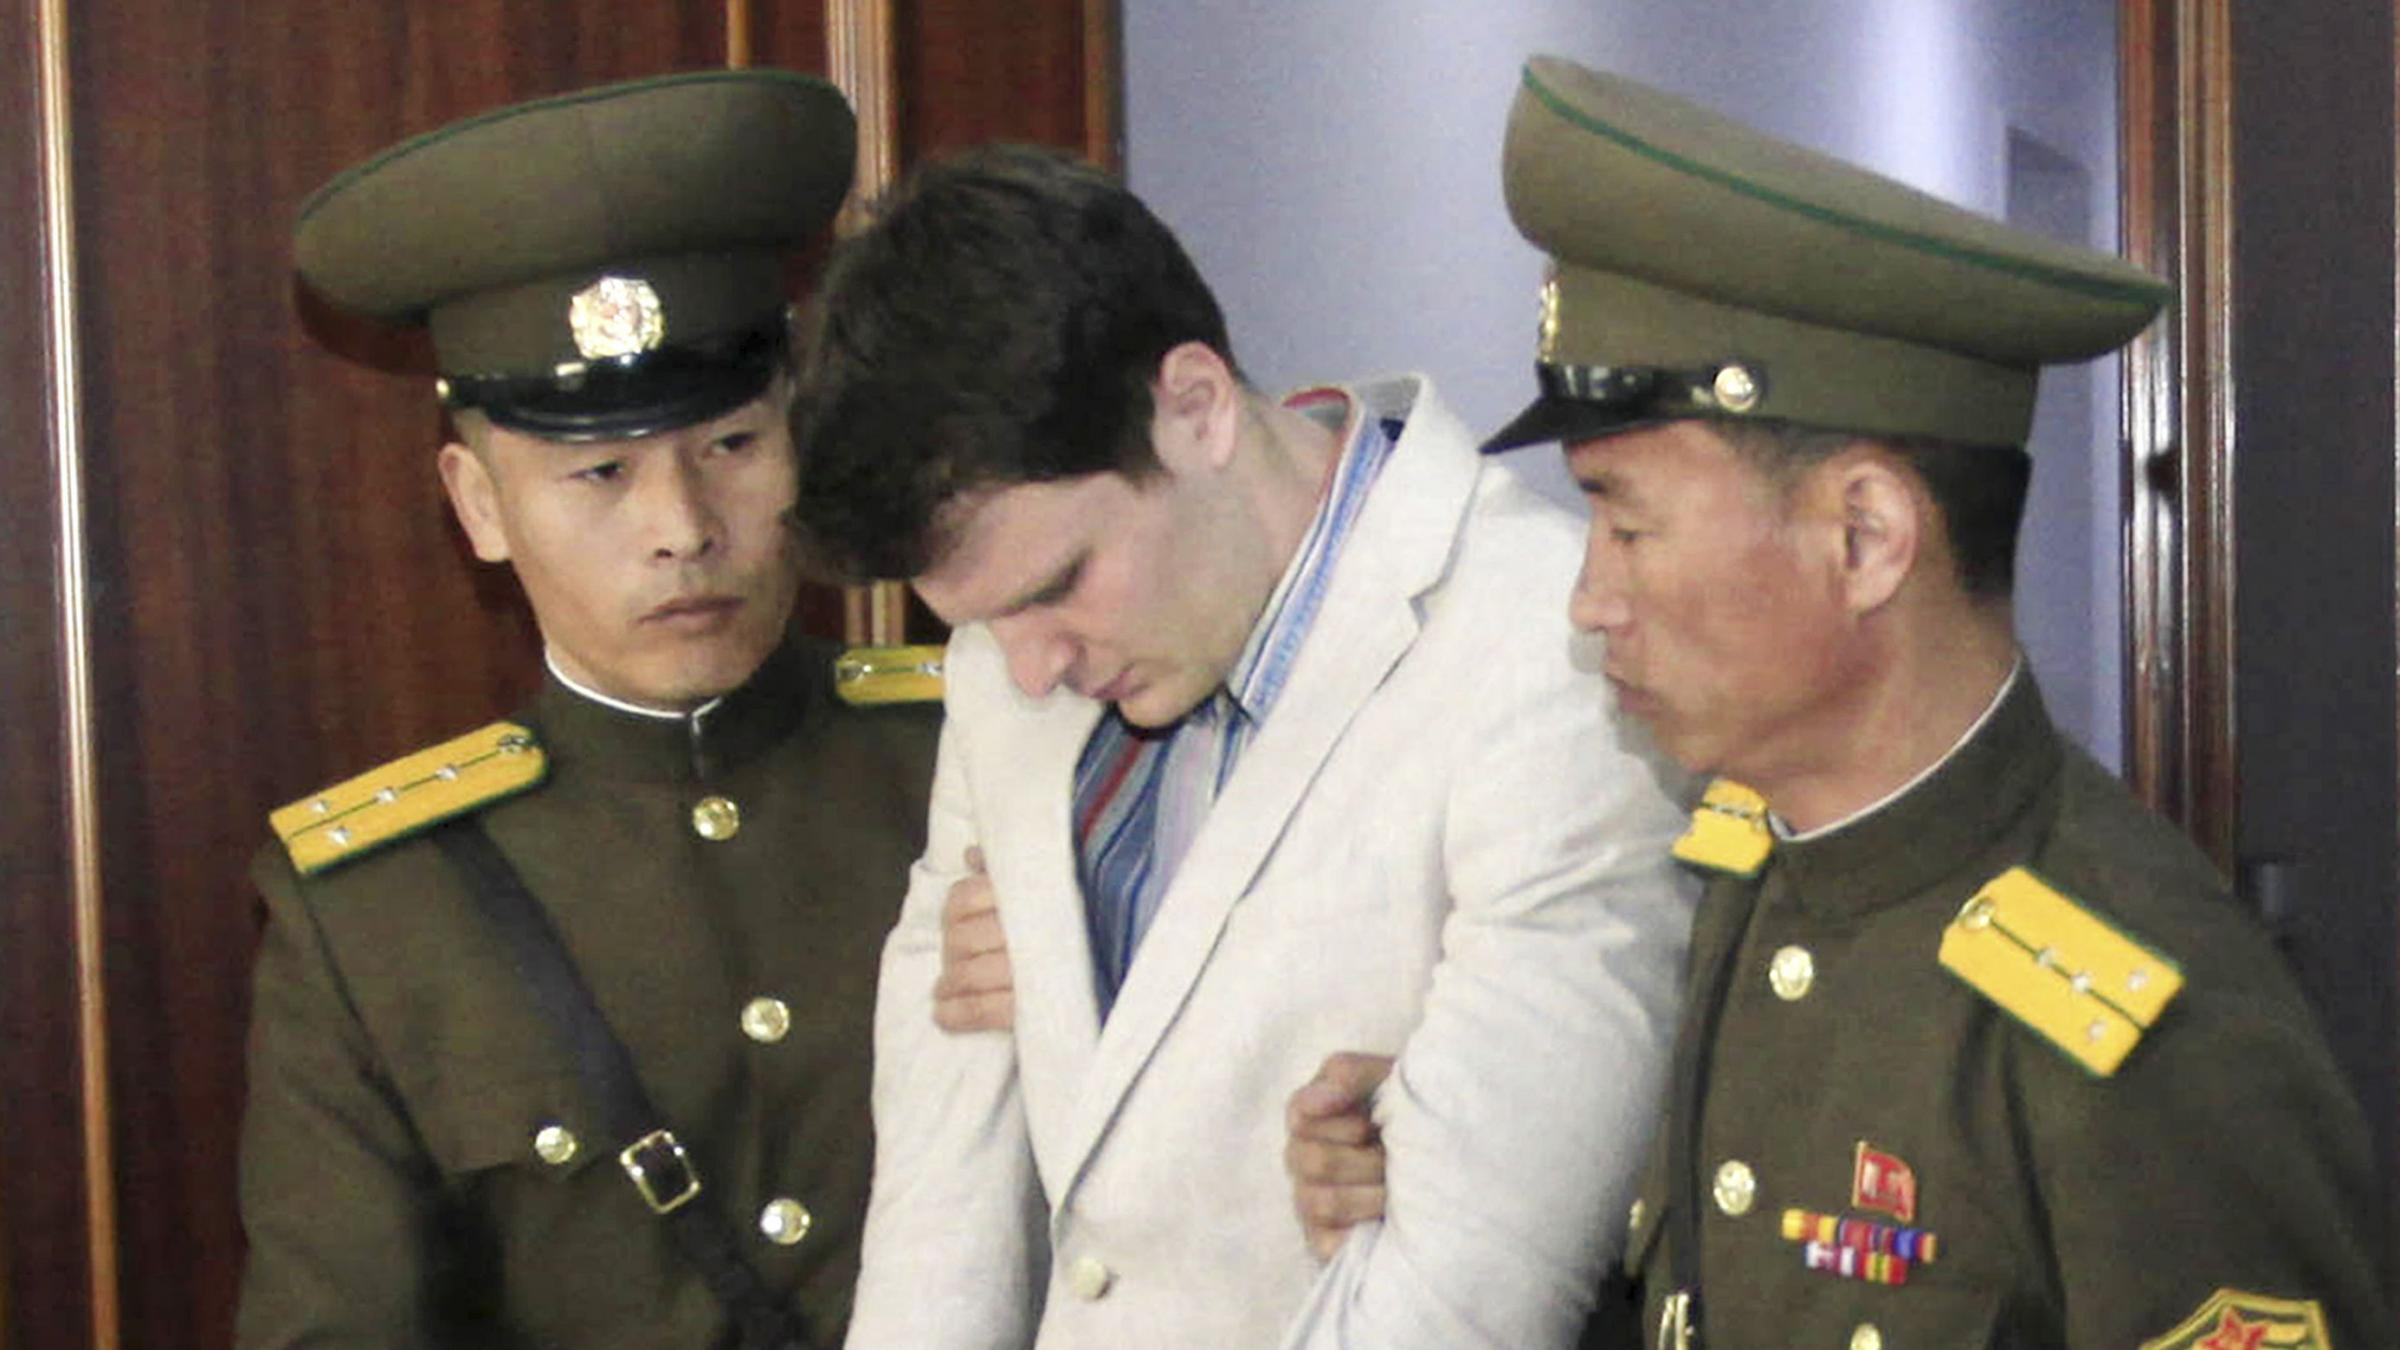 The First Video Of Otto Warmbier Returning Home Is Heartbreaking